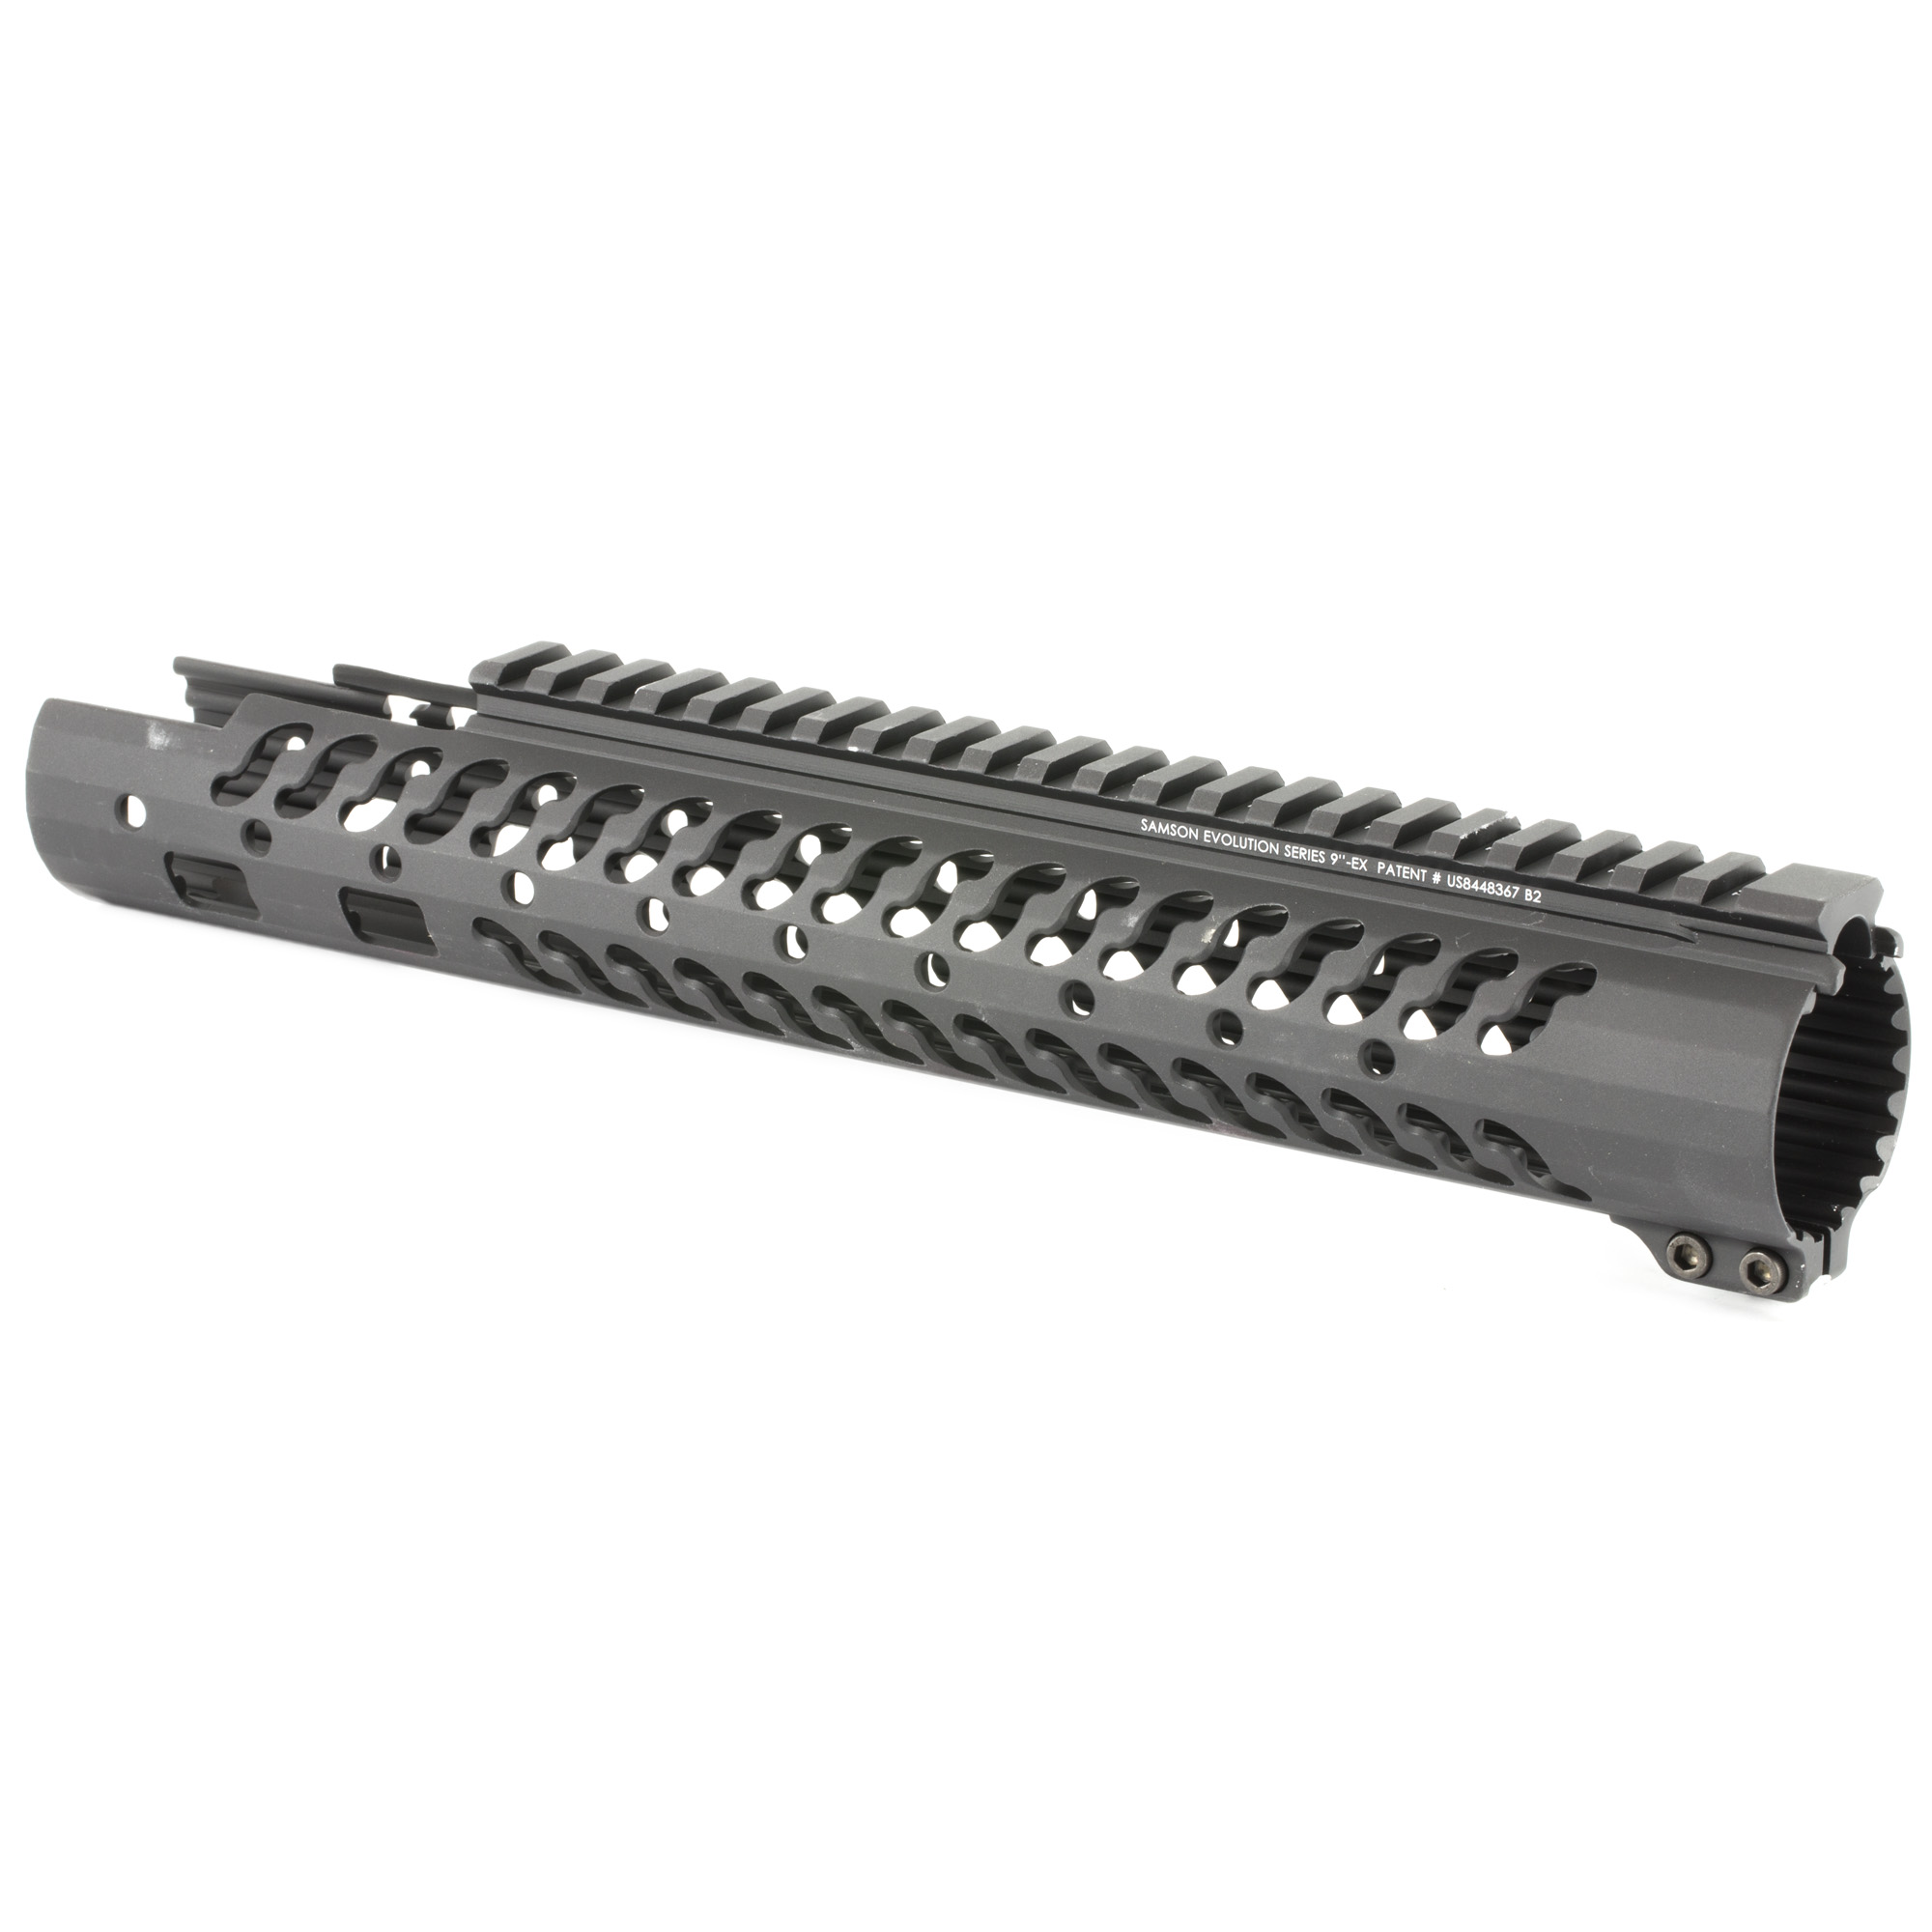 """The Samson Evolution EX Series is the next step forward in free-floating handguards. Being lightweight and durable allows the Samson Evolution EX Series to offer the perfect upgrade for 3-Gun competition shooting"""" law enforcement and military personnel or weekend enthusiasts. Accessory Picatinny rails can be added or removed at any of 7 positions around the rail and any place along the length of the tube. Rail accommodates most piston systems. This is the 9"""" Mid Length Evolution EX Evolution Rail for the AR-15.Includes: Thermal bushings"""" Two (2) 2"""" accessory rail kits"""" One (1) 4"""" accessory rail kit and wrenches."""